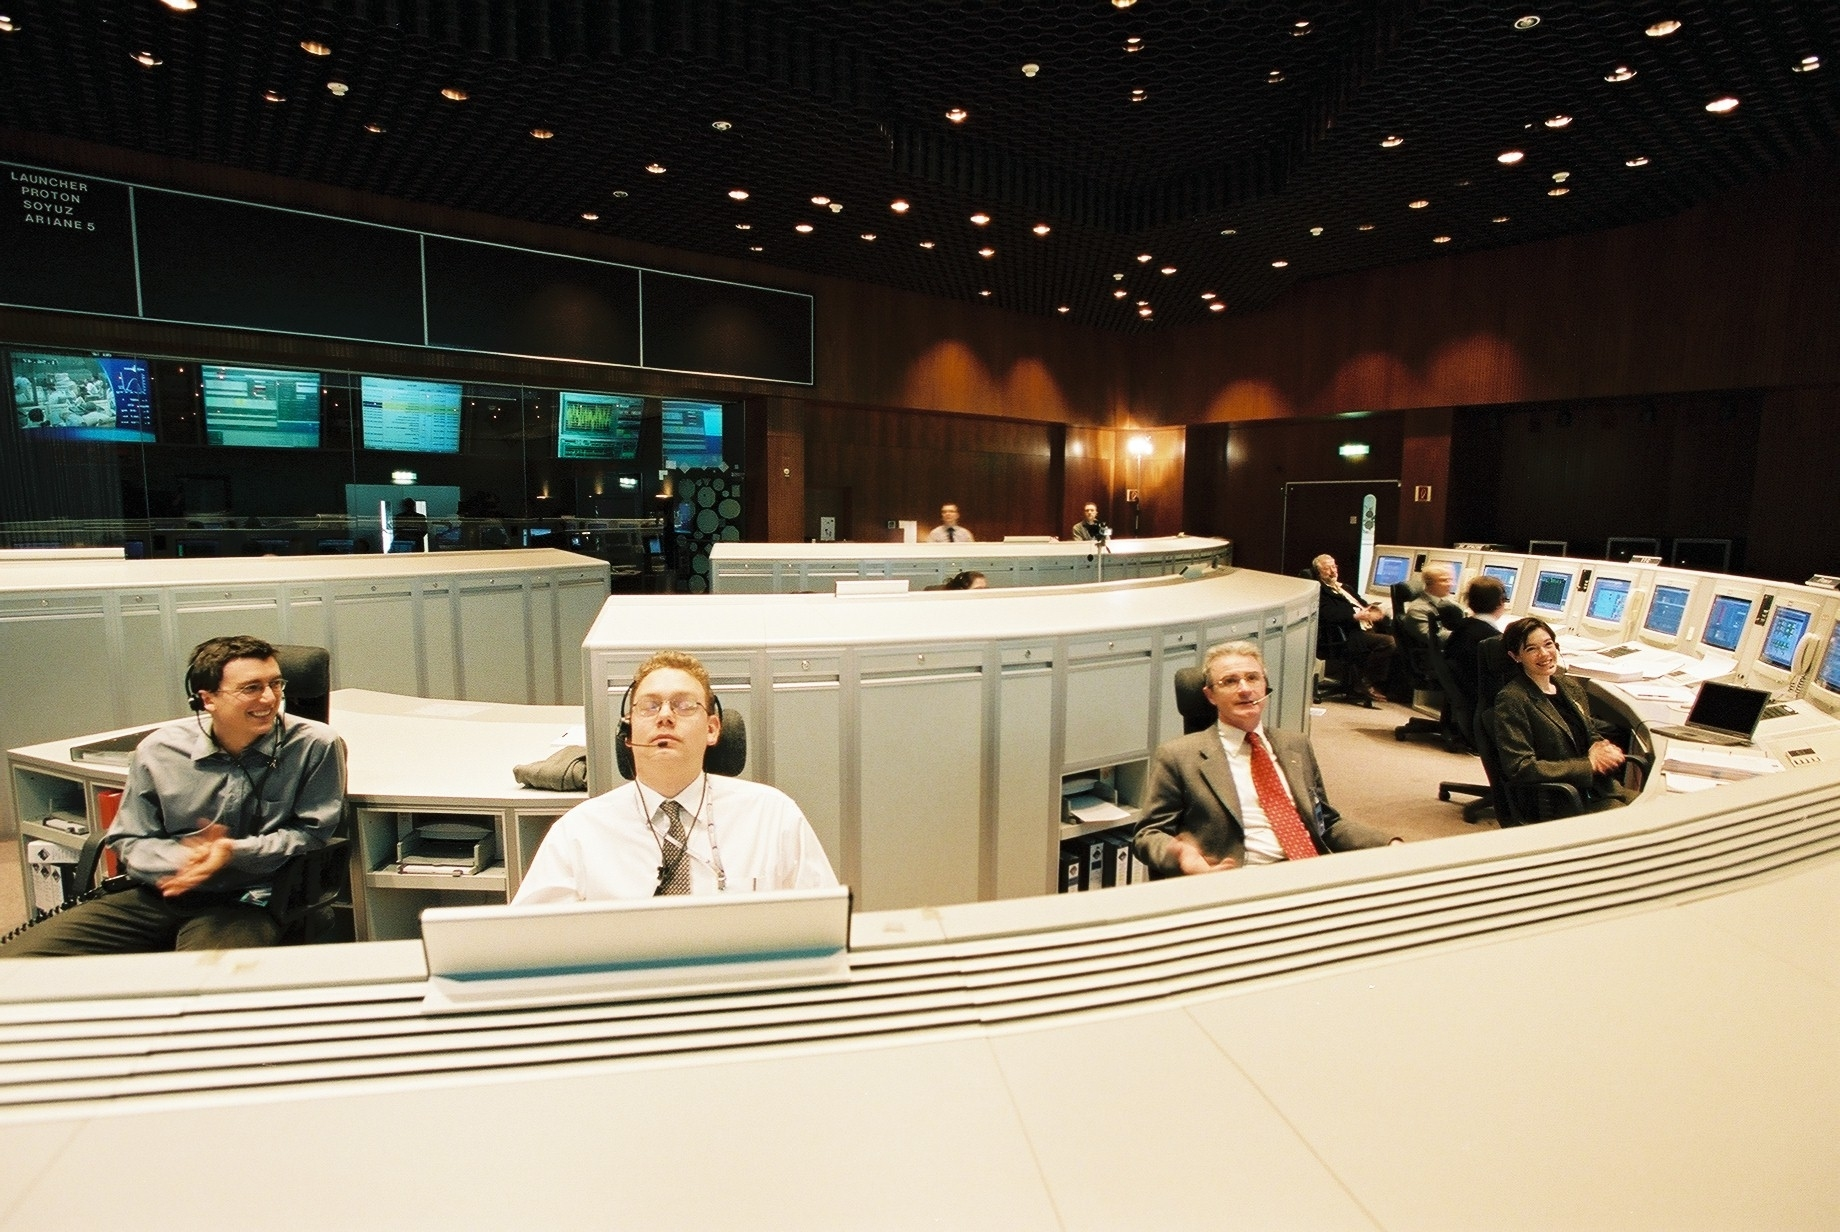 ESA Science & Technology: Main Control Room at ESOC